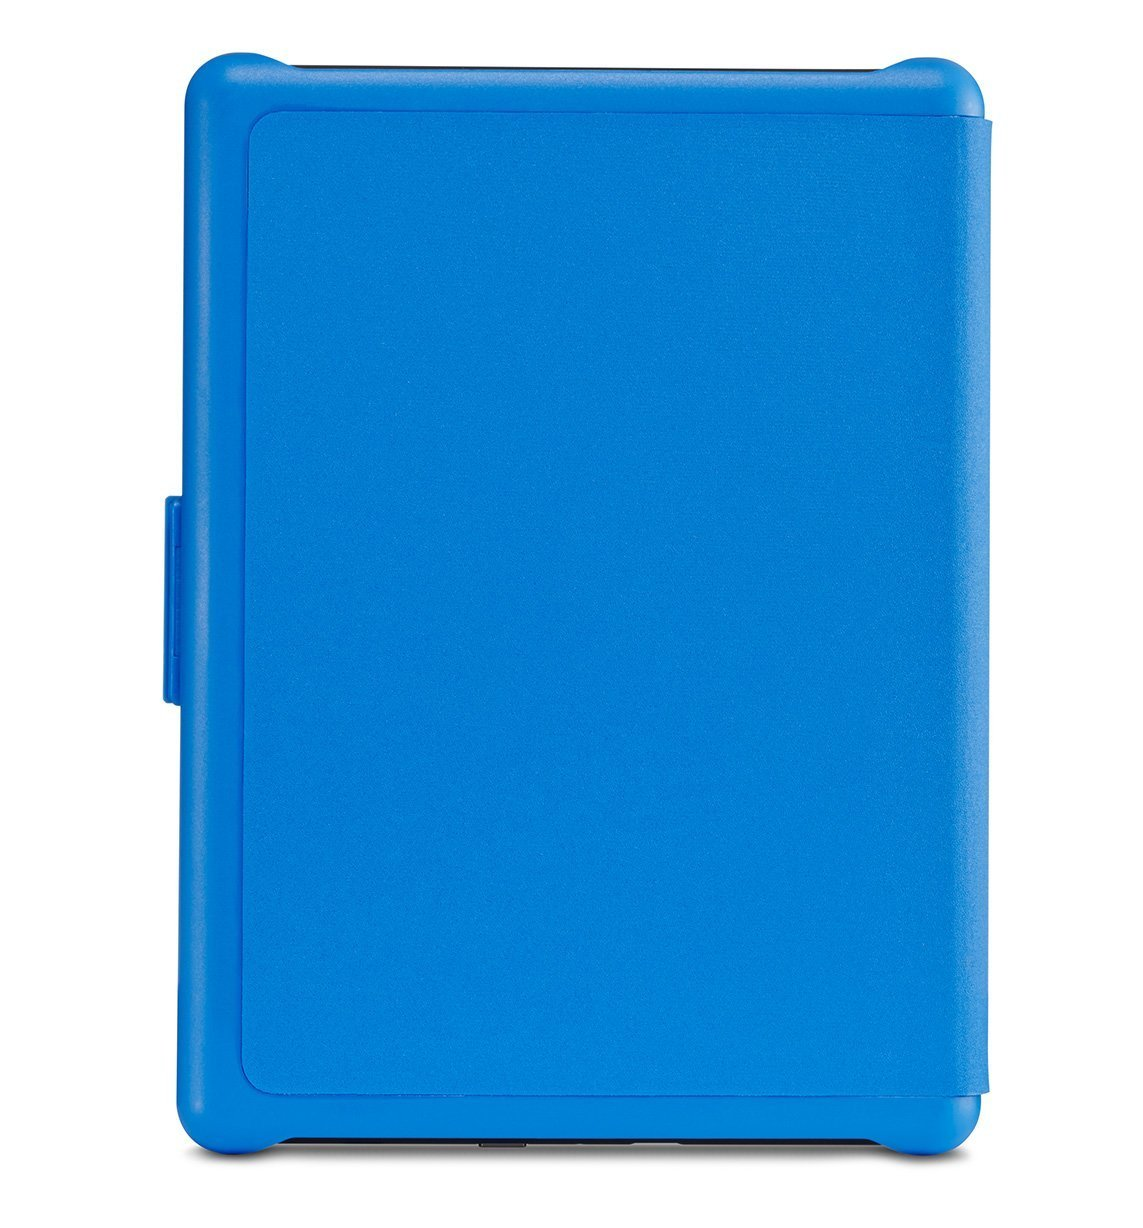 Чехол обложка Amazon Cover Case for All-New Kindle 8 (2016) Blue. Фото N2